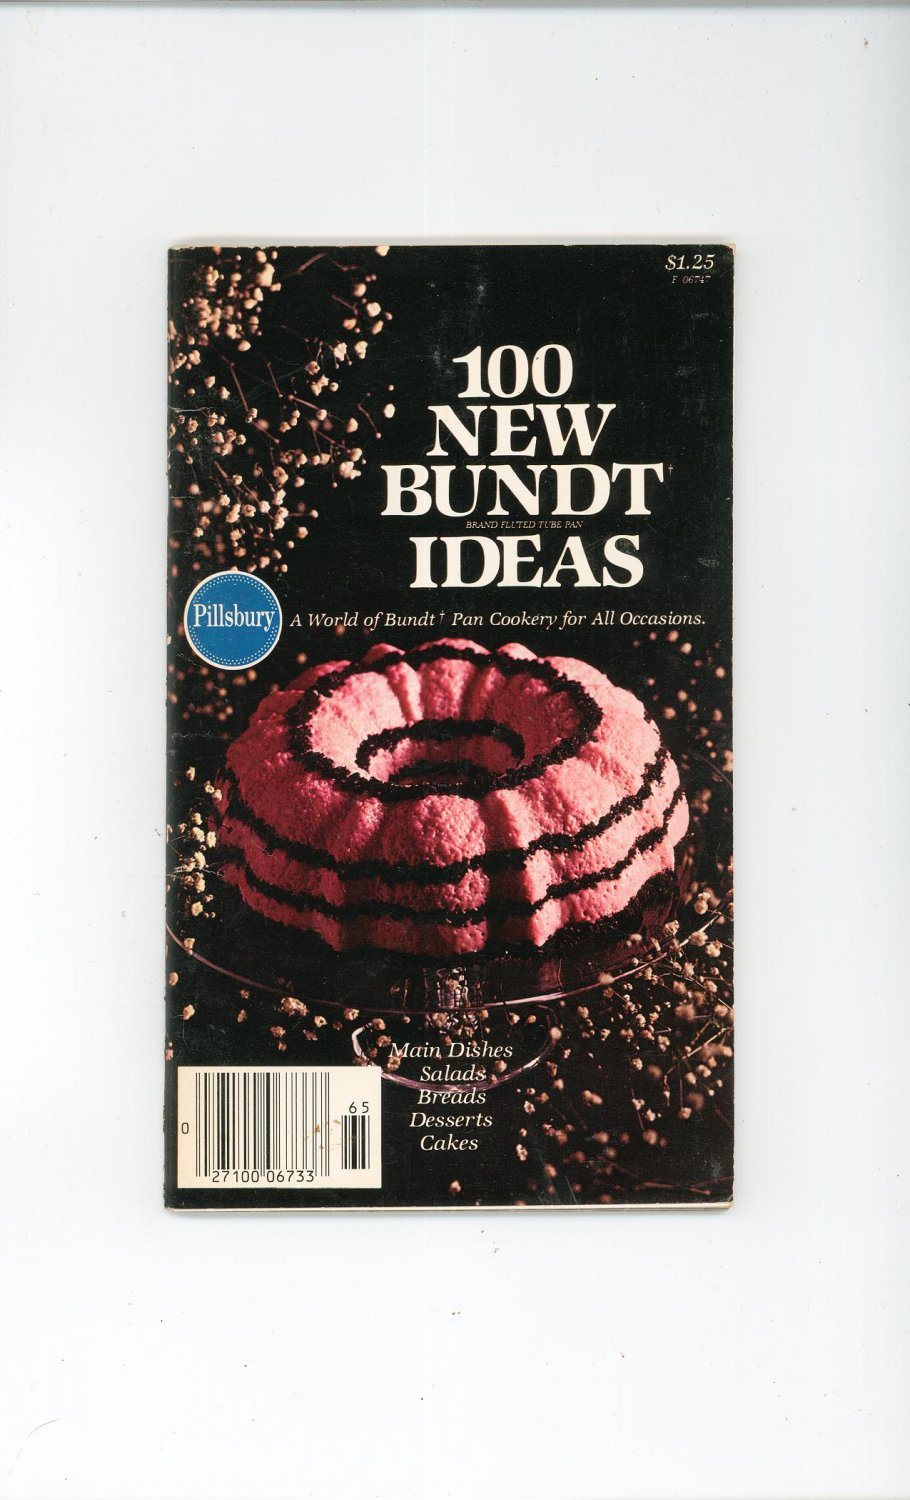 Vintage Pillsbury 100 New Bundt Ideas Cookbook 1977